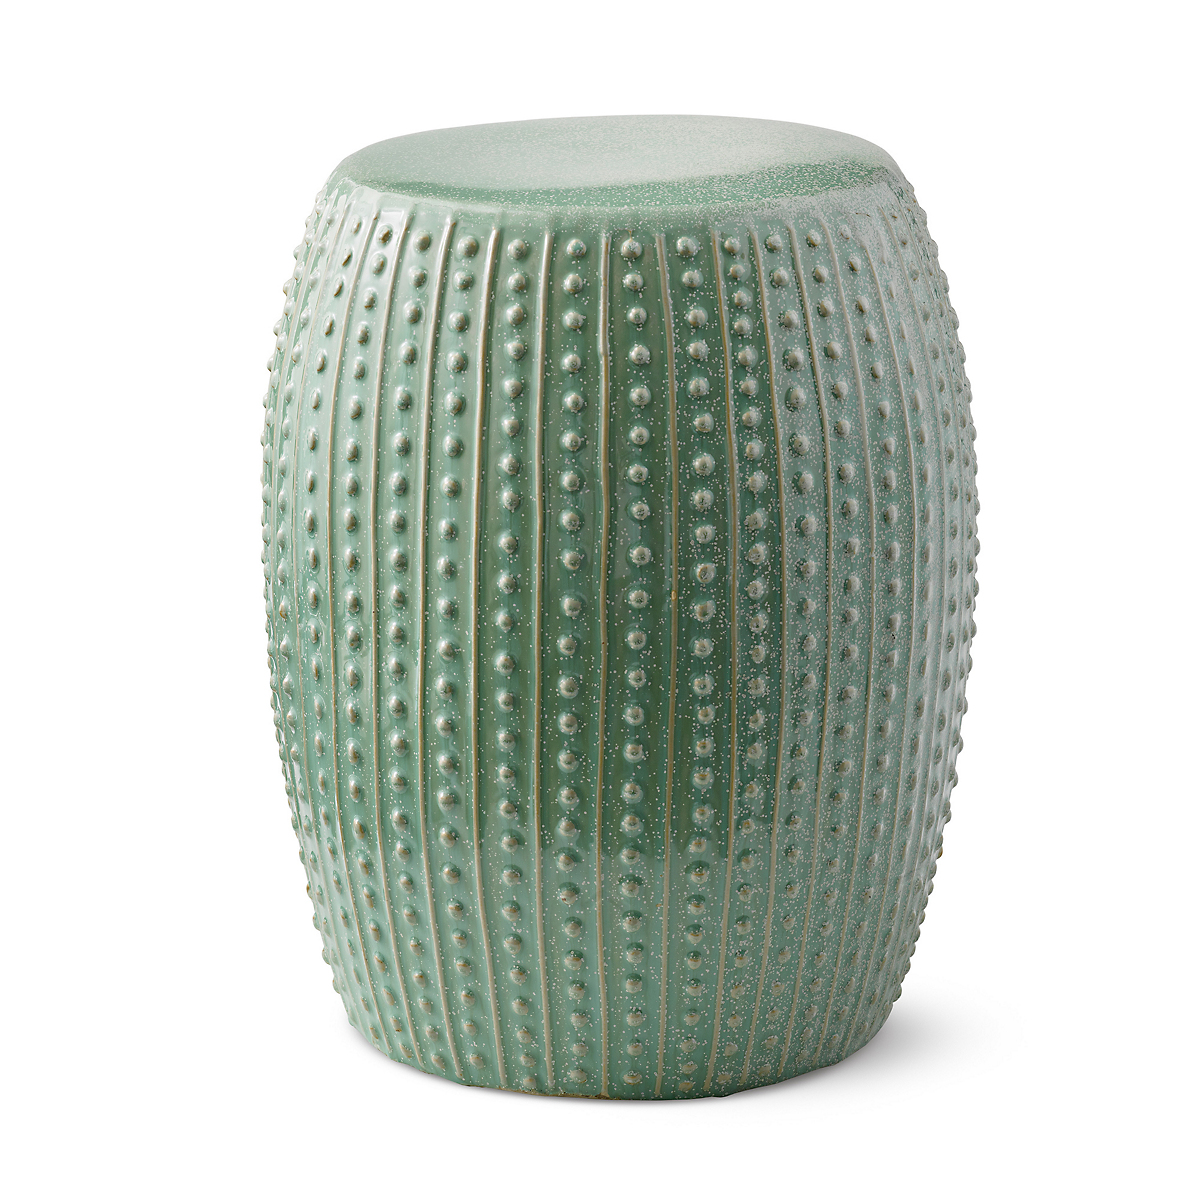 Sea Urchin Garden Stool